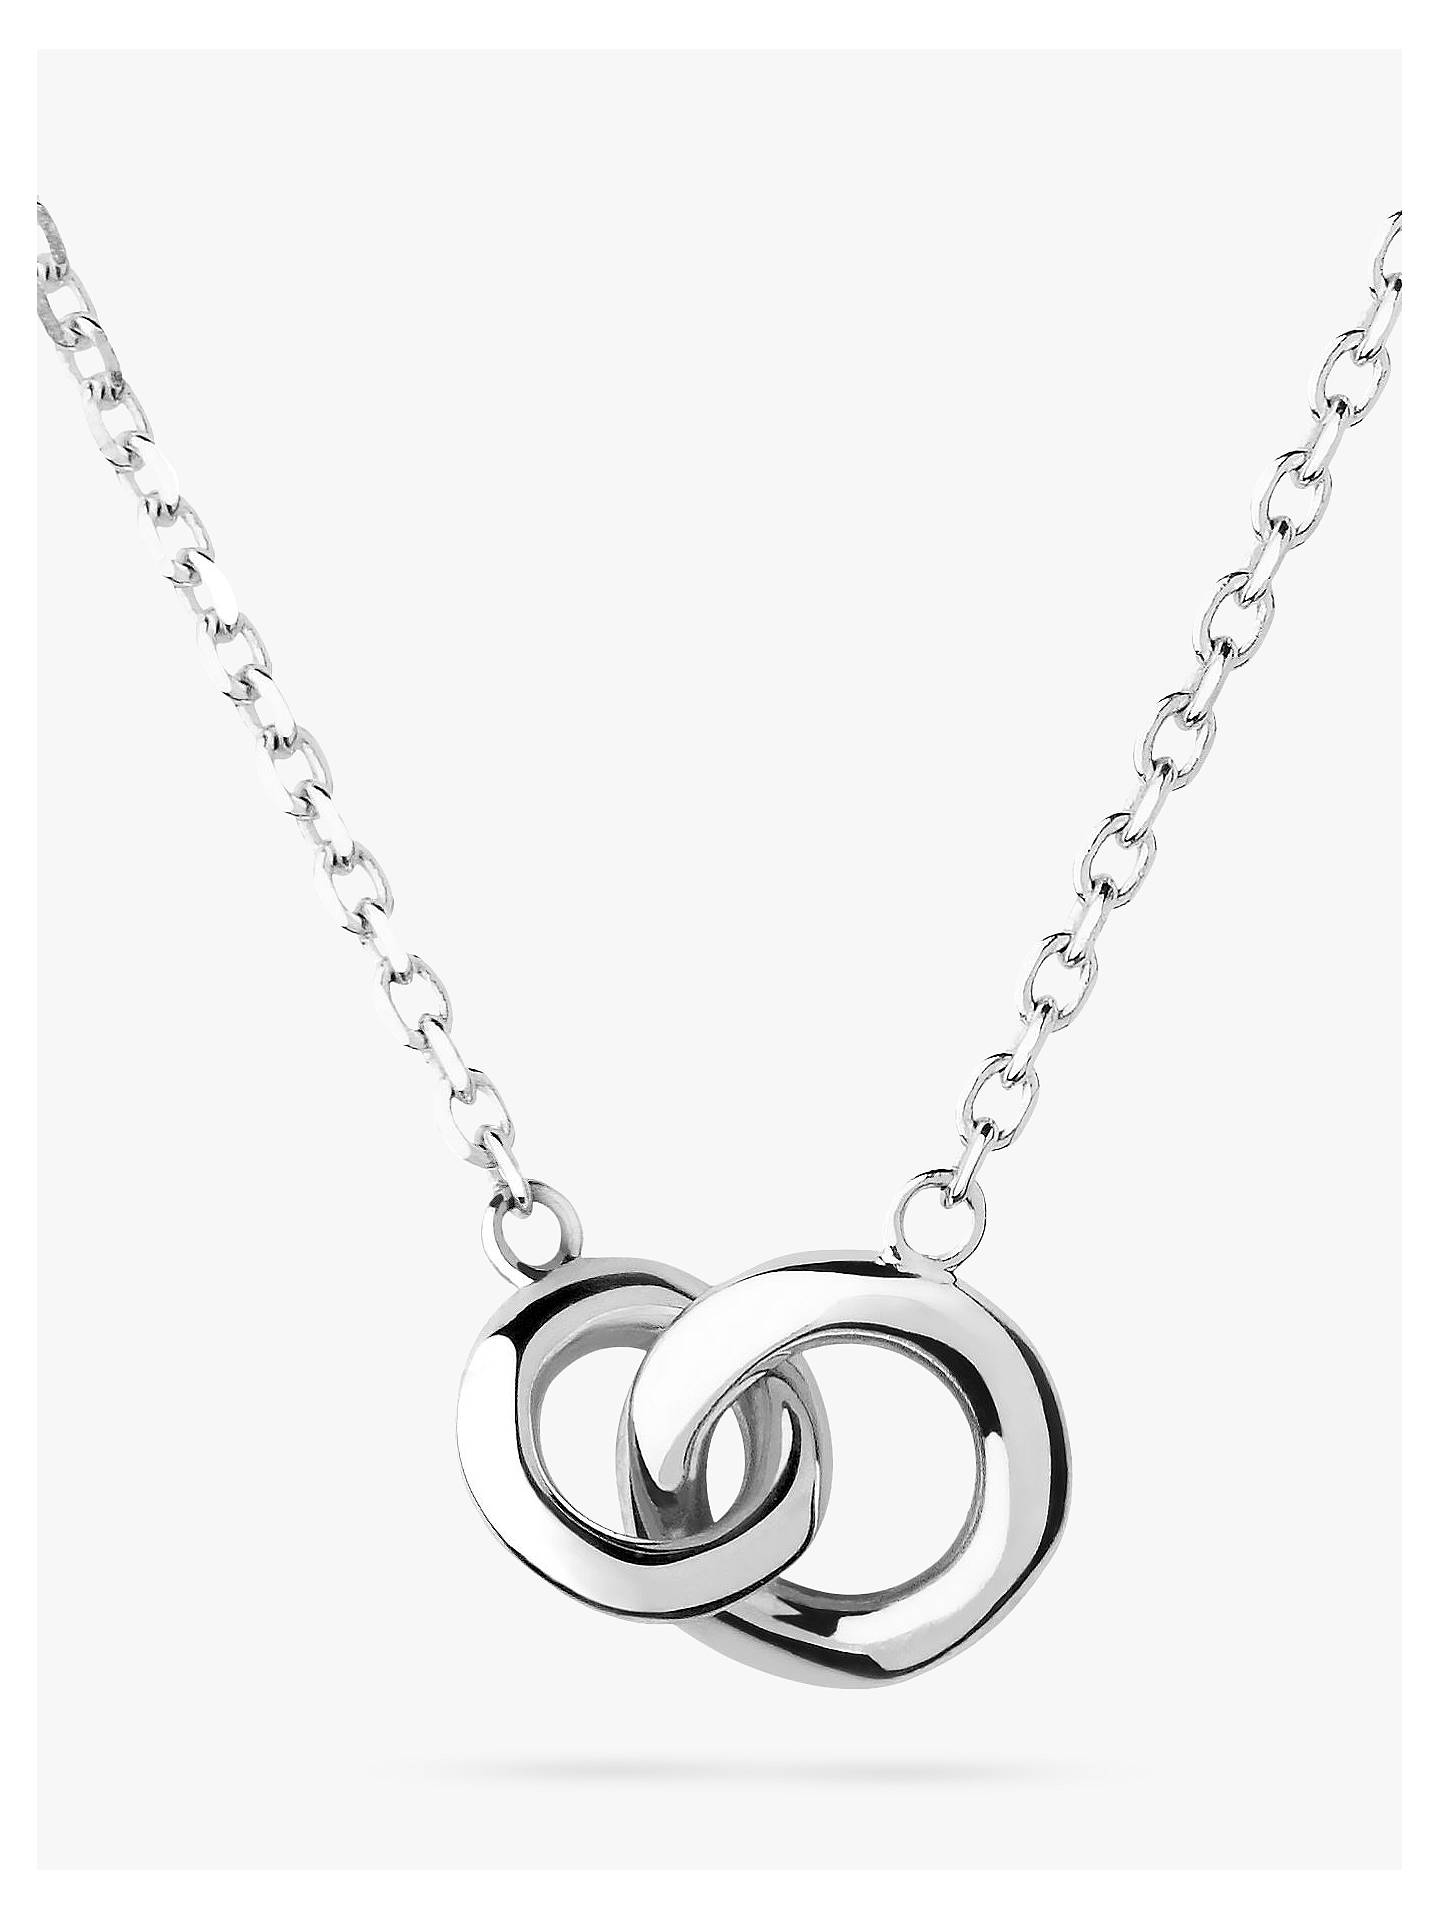 BuyLinks of London 20/20 Sterling Silver Mini Necklace, Silver Online at johnlewis.com